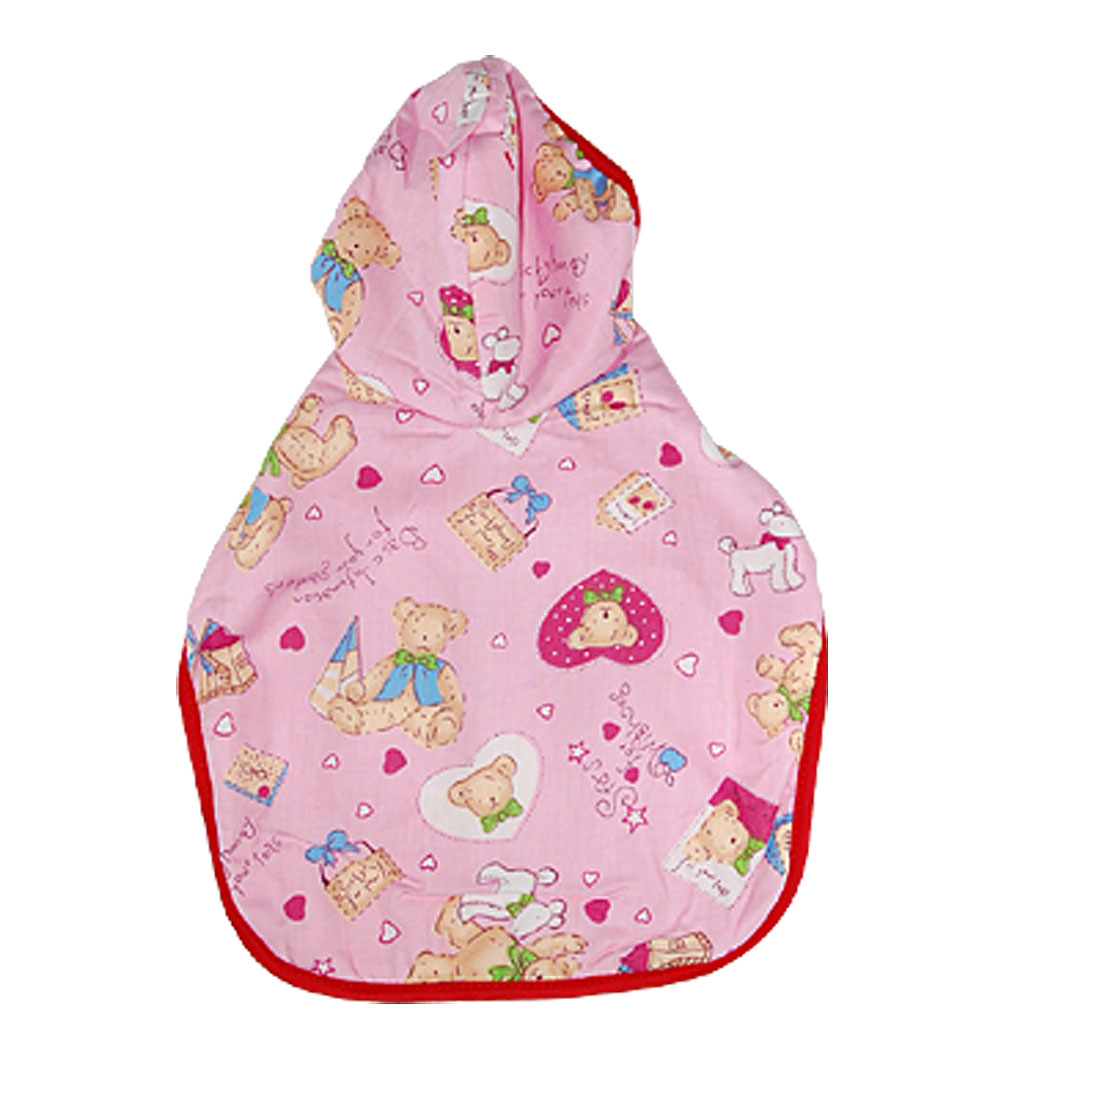 Pink Dog Clothes Cartoon Hooded Cape Soft Pet Sleepwear S